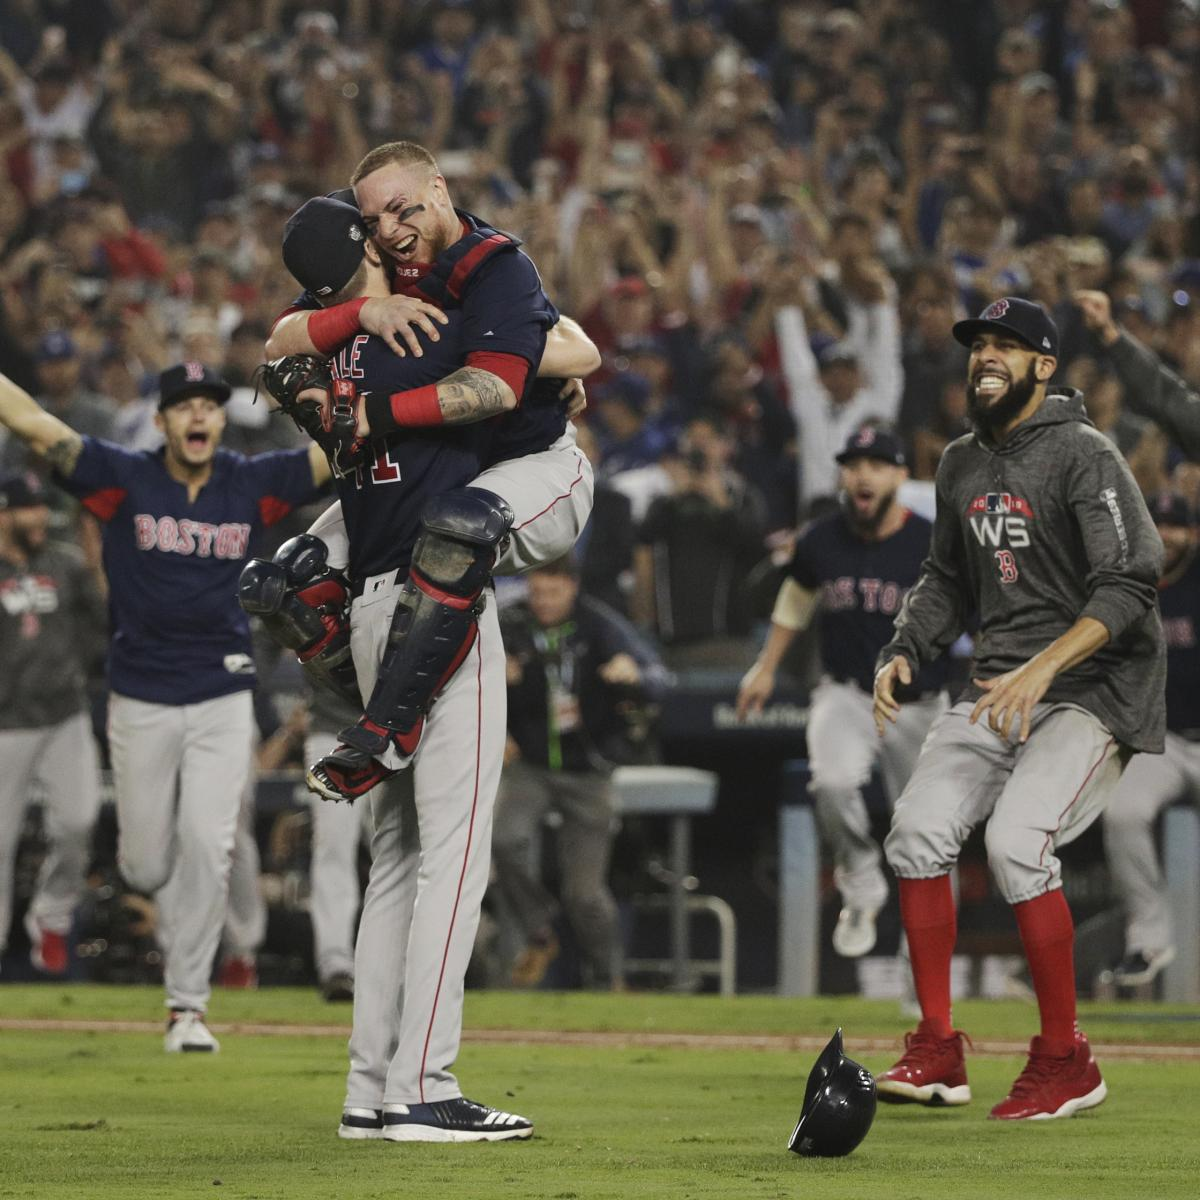 Ranking the 10 Greatest World Series Champions of the Last 20 Years